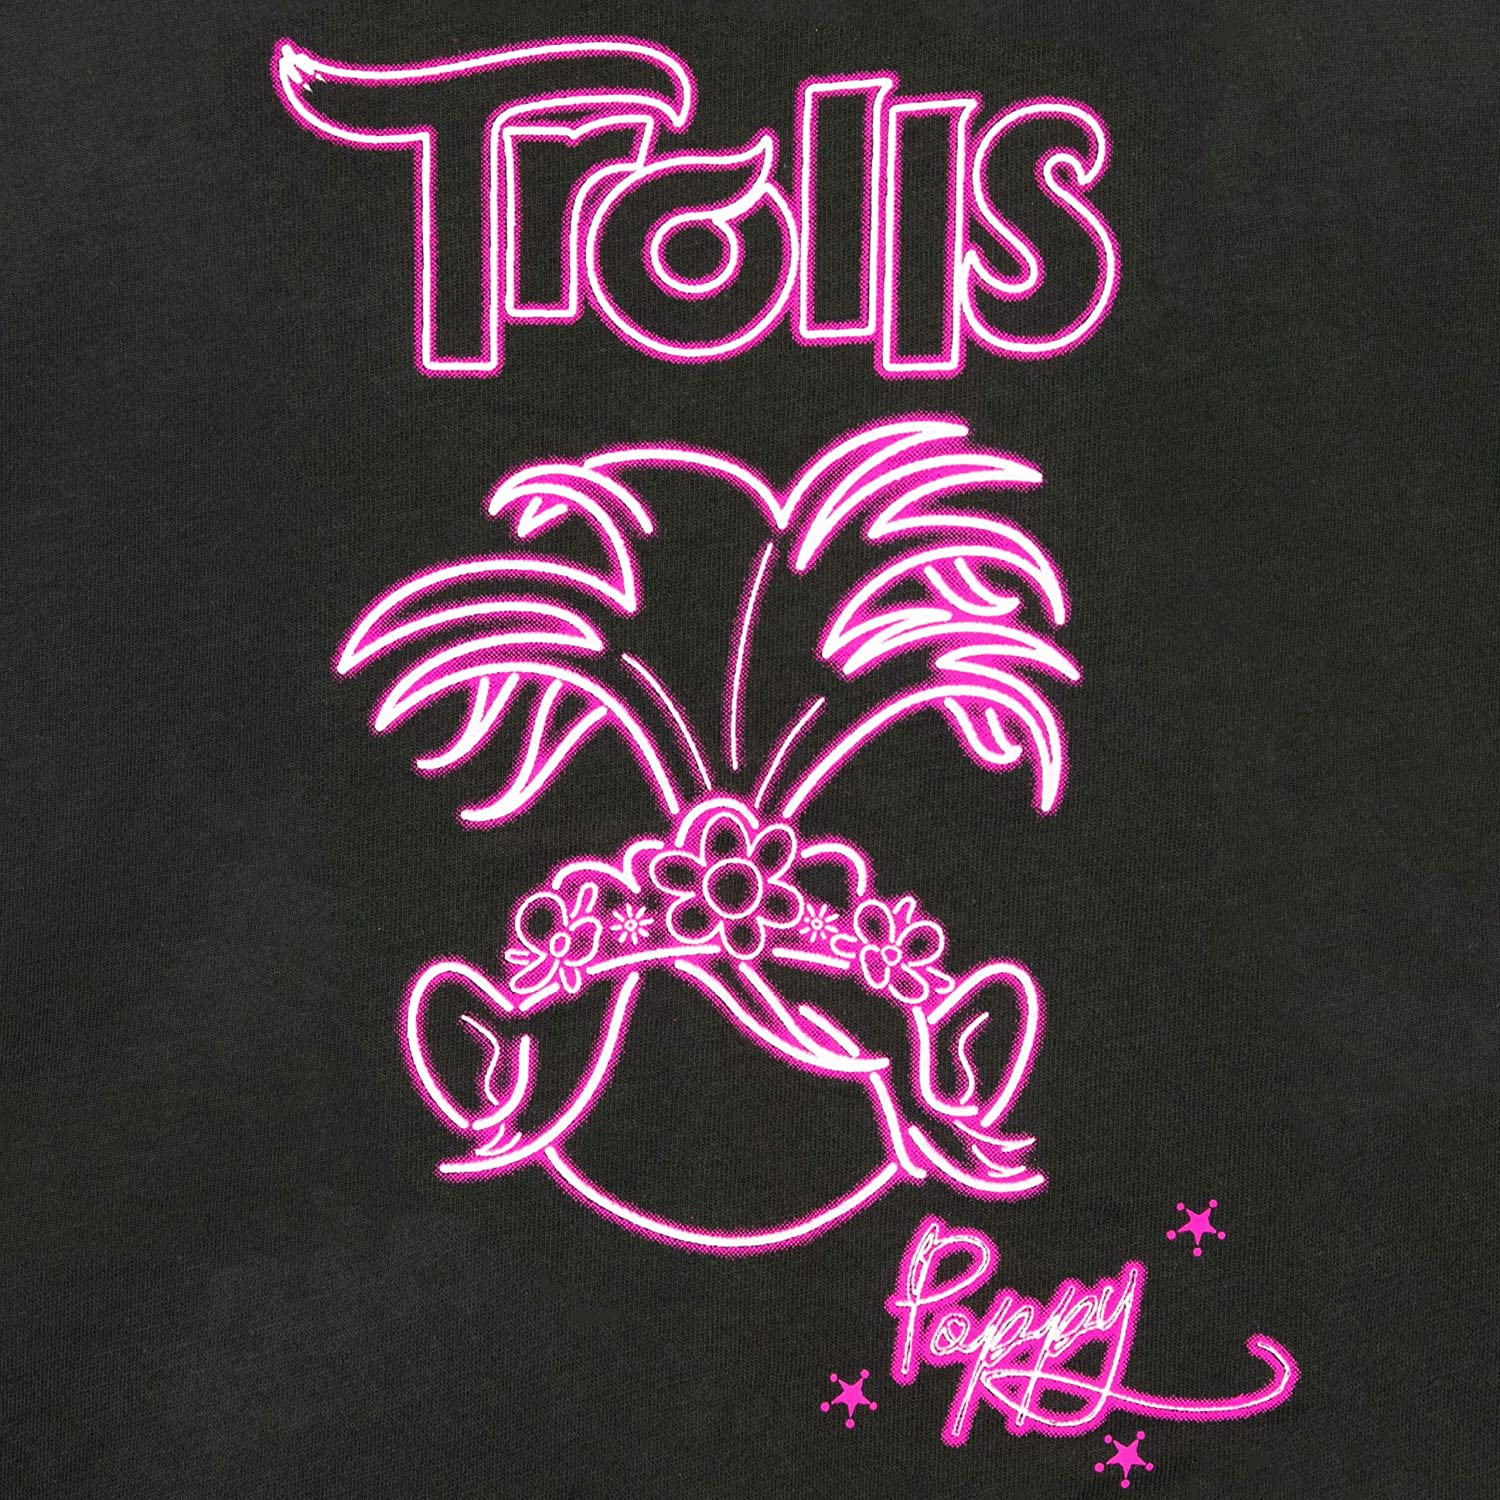 Trolls Girls Poppy T-Shirt